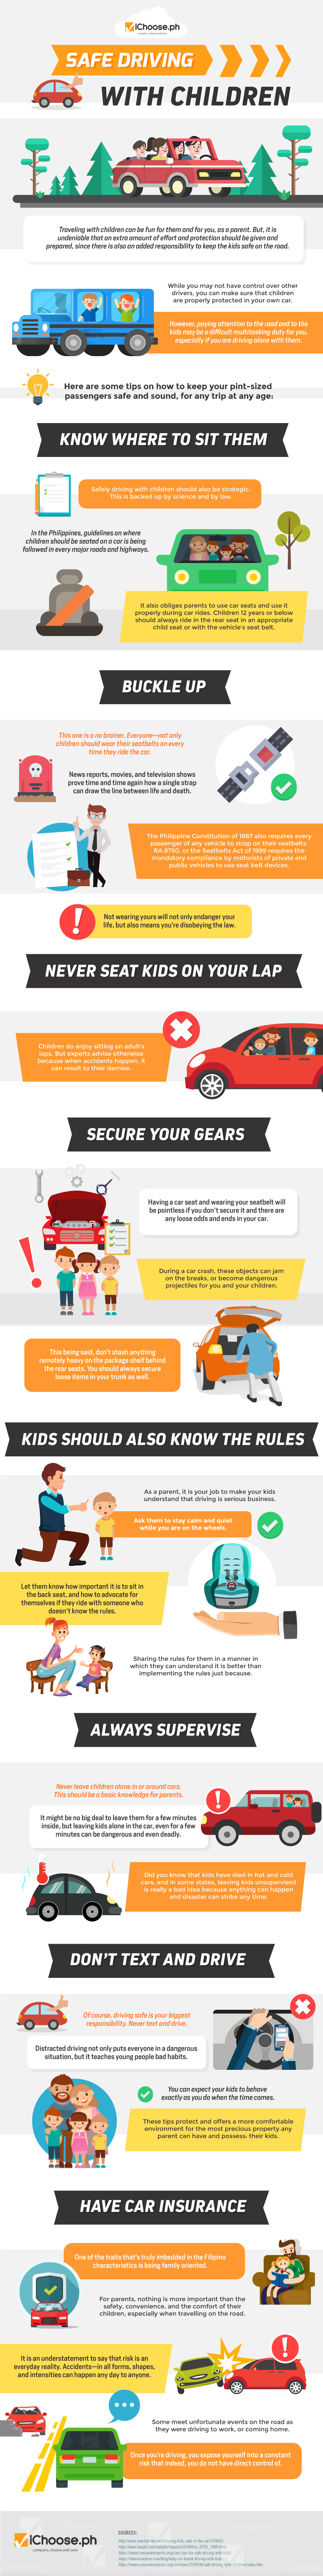 Drive Safe: For Your Children's Sake! - Infographic